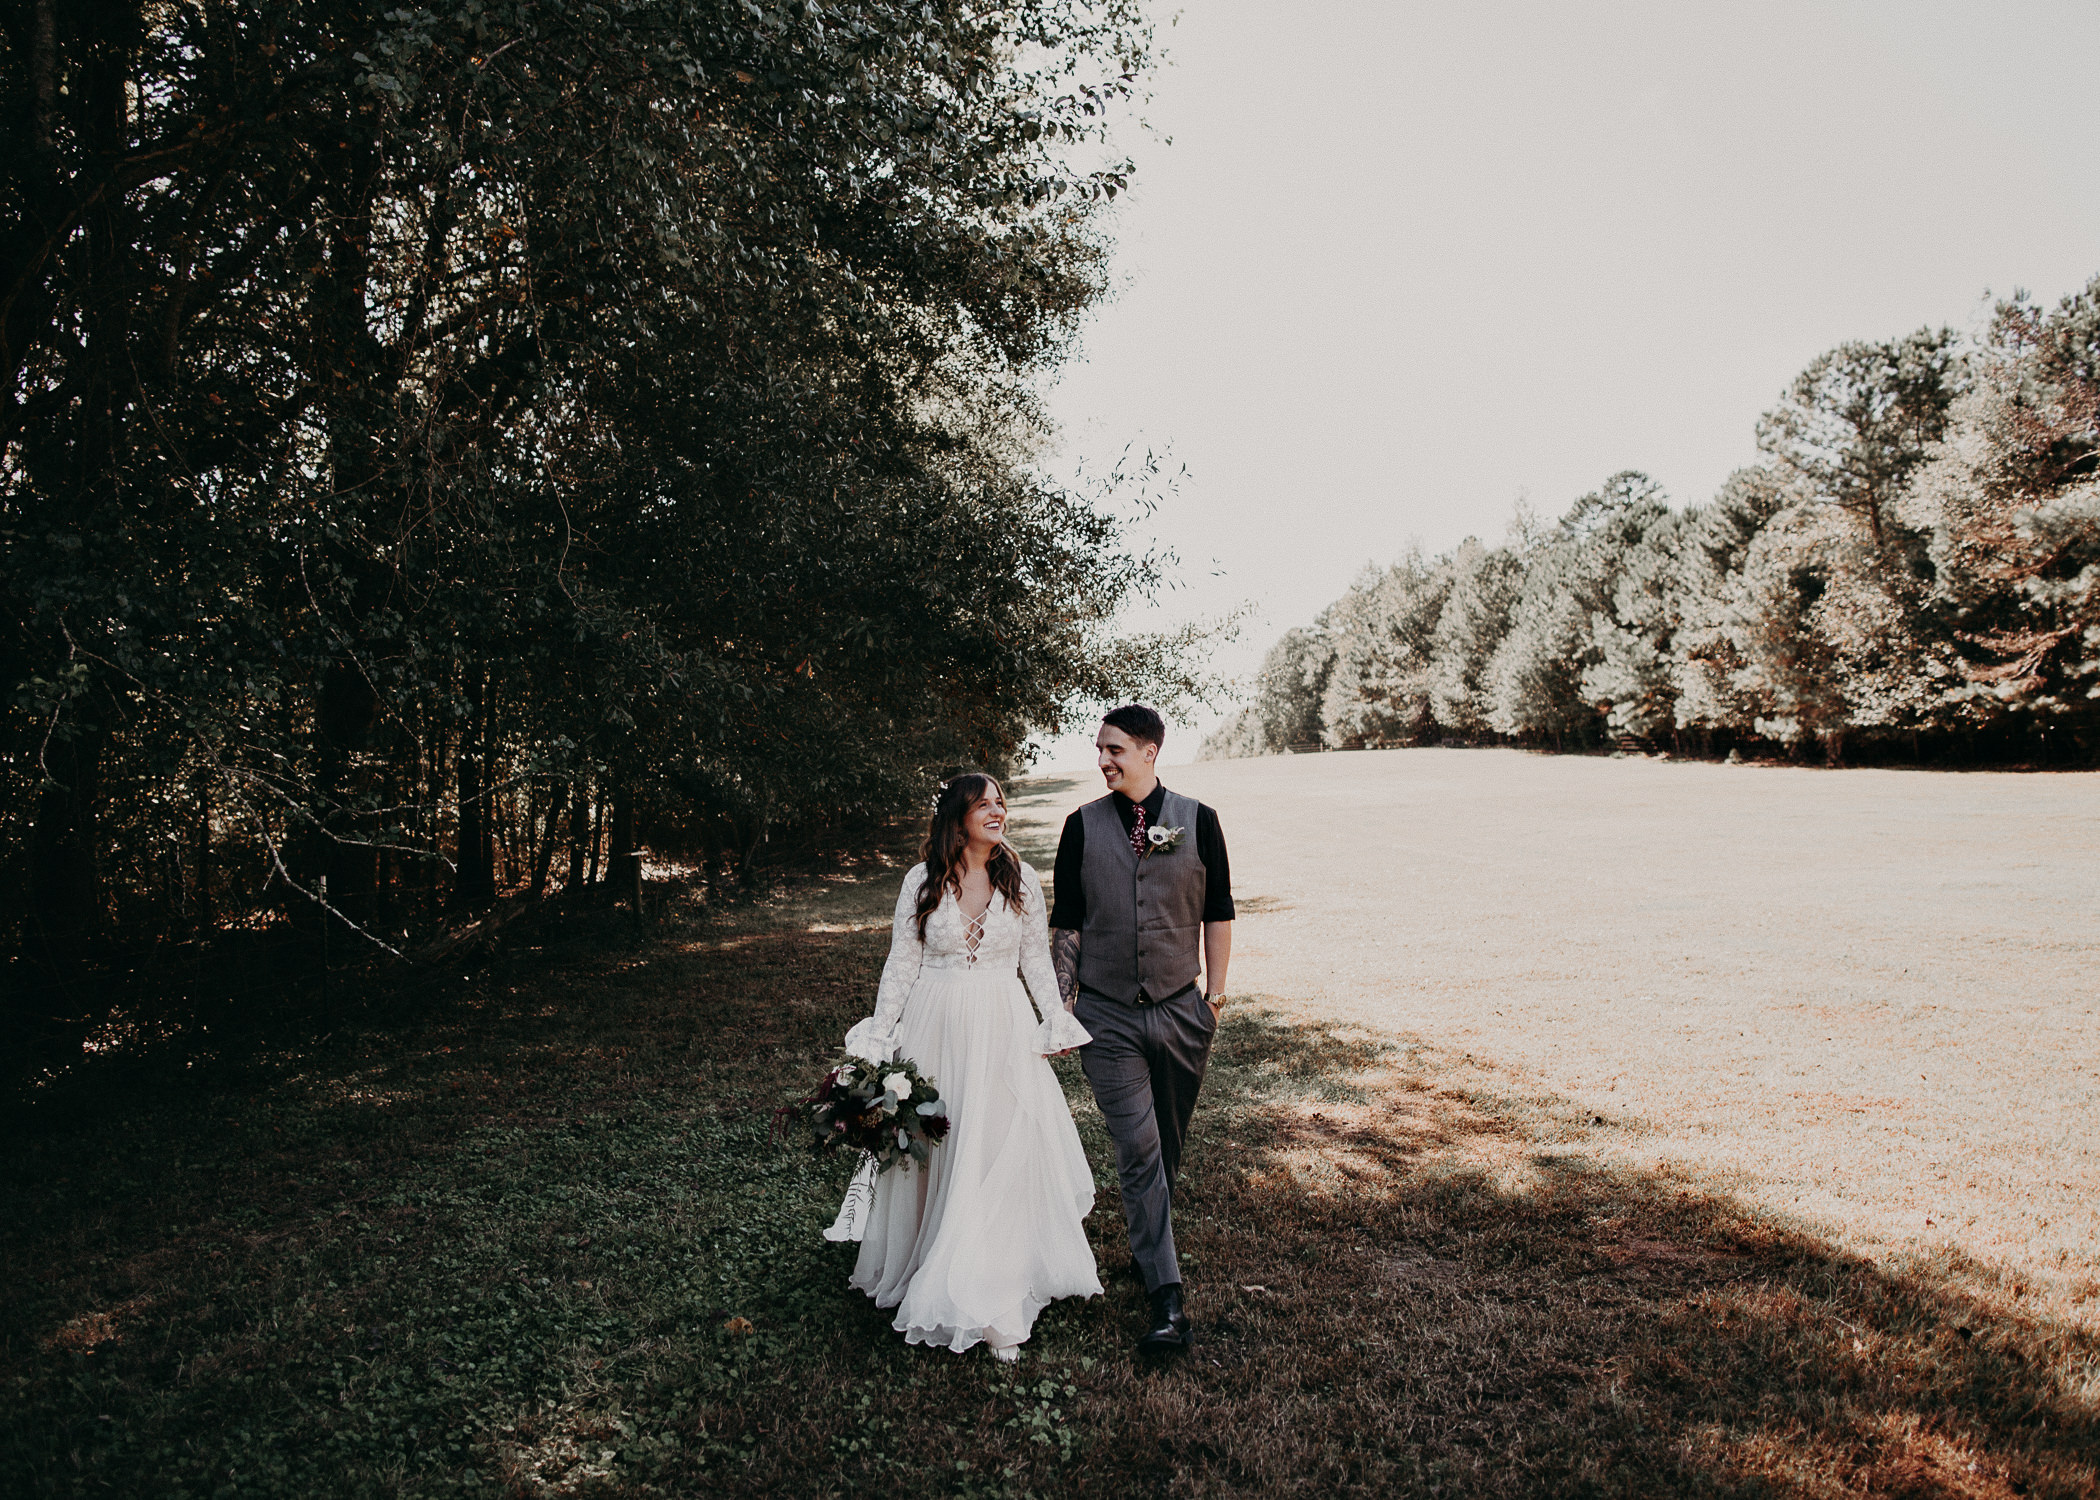 66 - Wedding bride and groom portraits : Atlanta wedding photographer .jpg